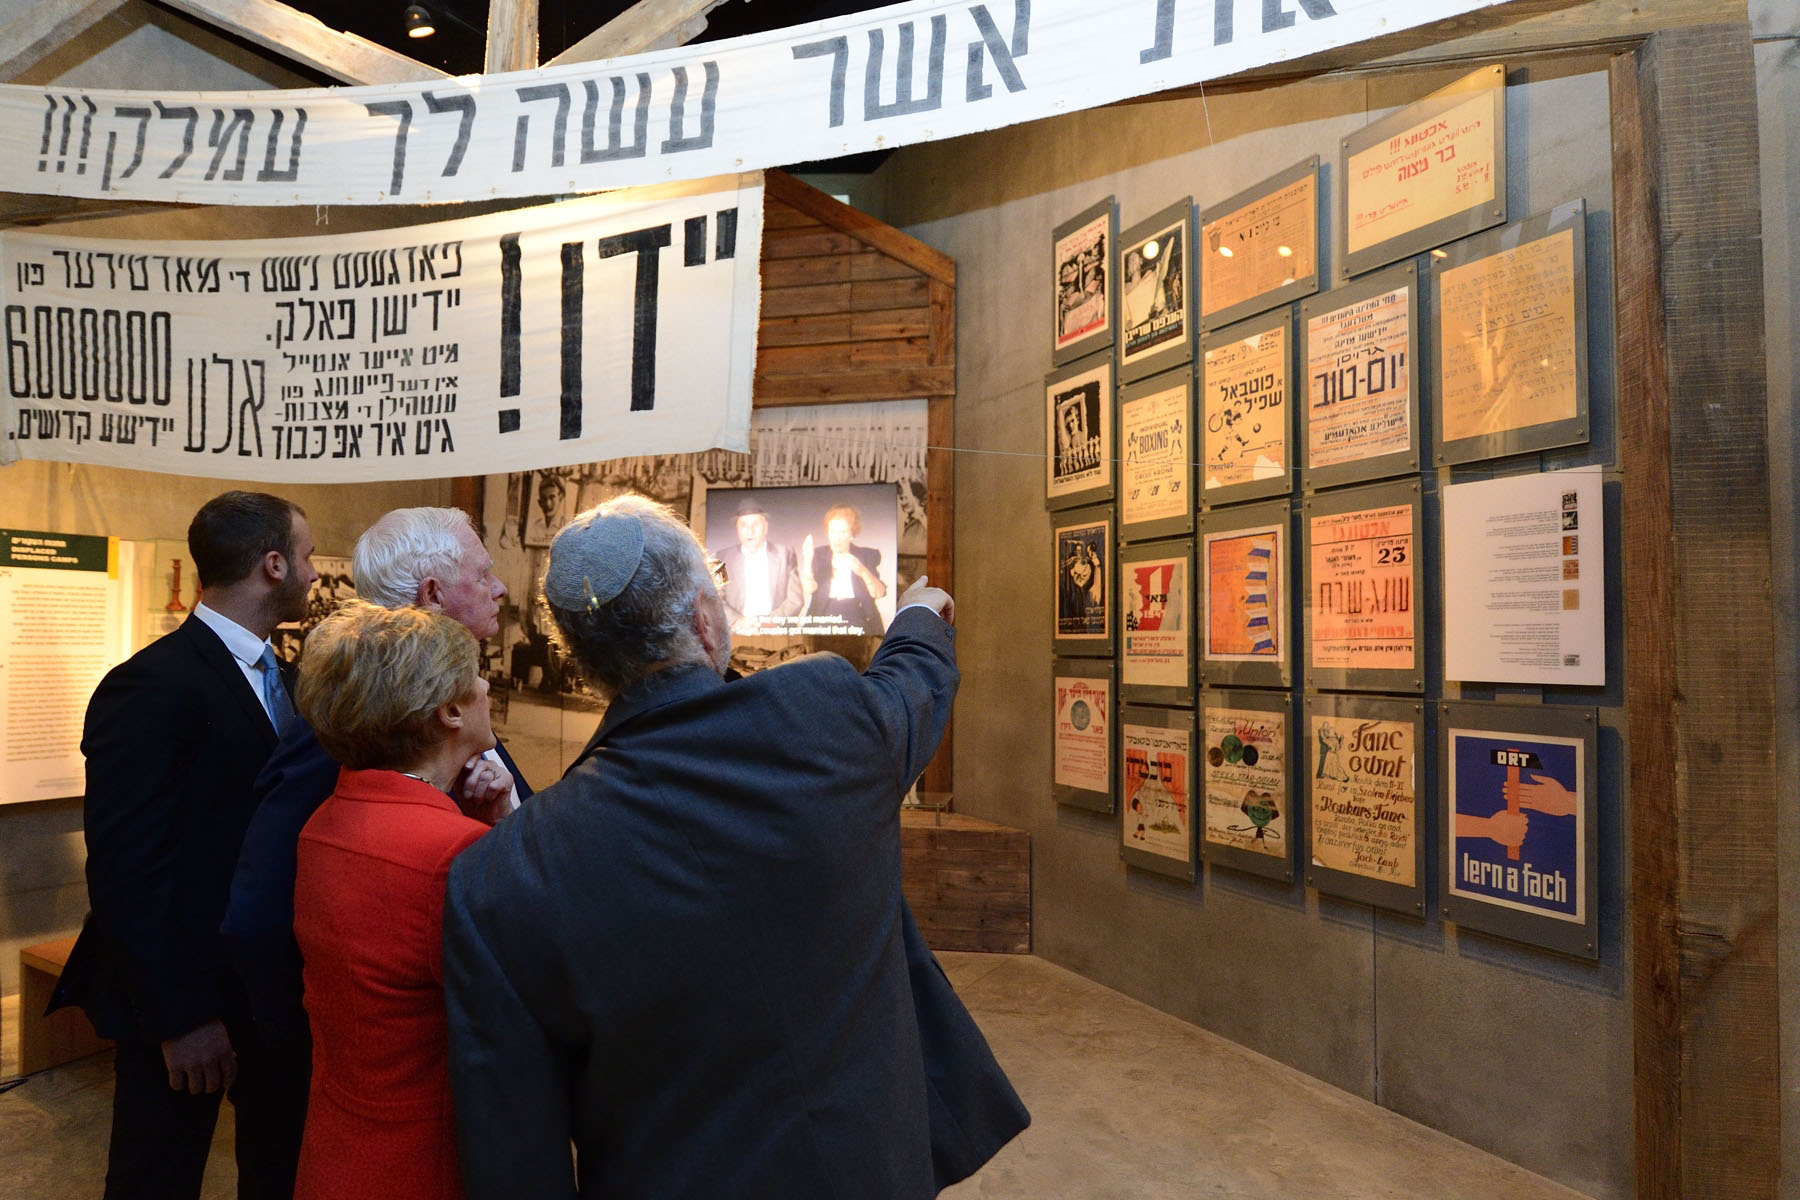 As the Jewish people's living memorial to the Holocaust, Yad Vashem safeguards the memory of the past and imparts its meaning for future generations.